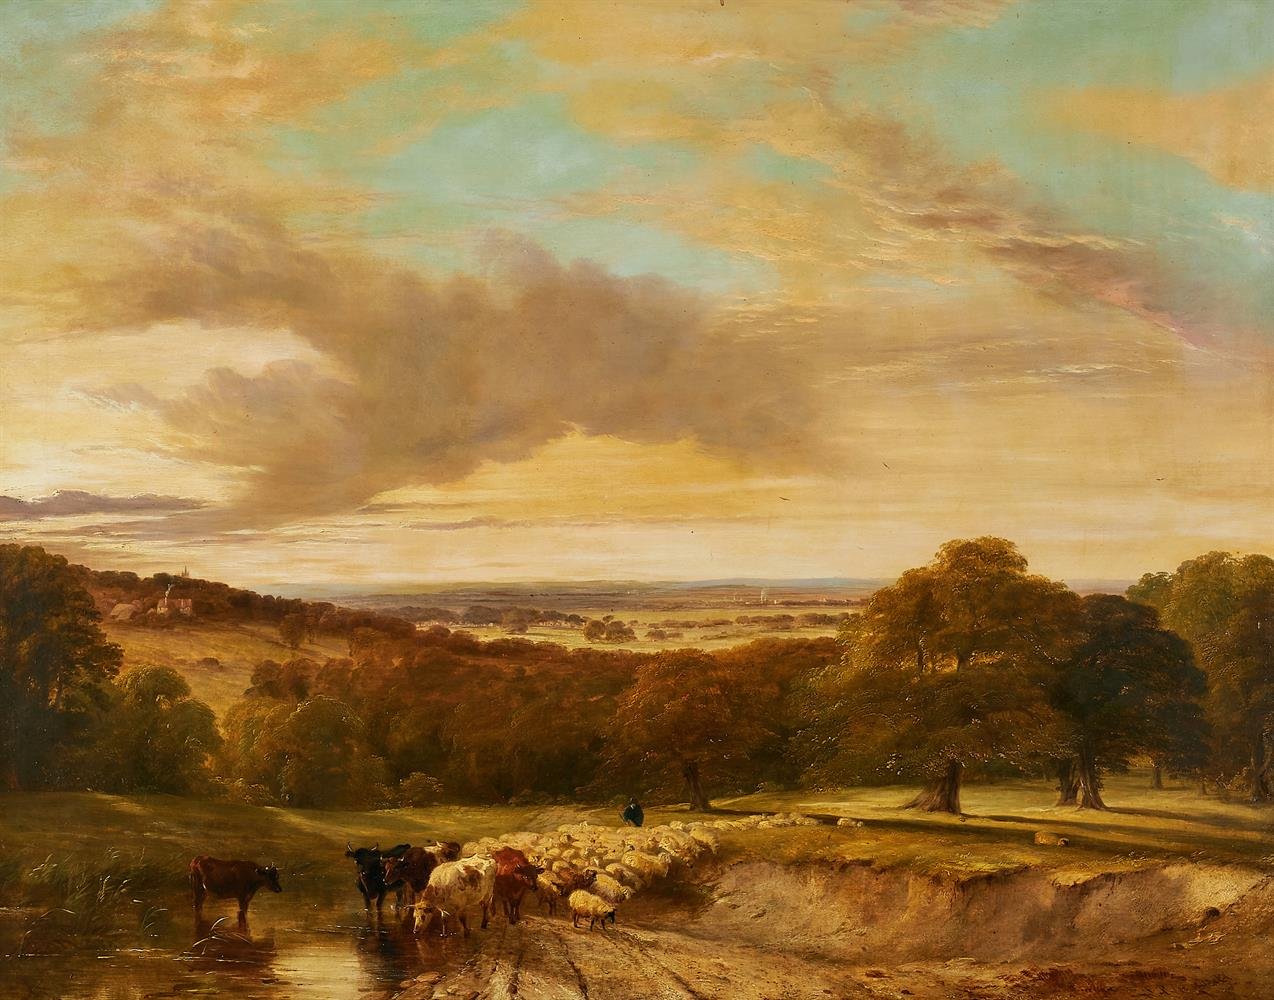 FREDERICK RICHARD LEE (BRITISH 1798-1879), CATTLE AND SHEEP IN AN EXTENSIVE LANDSCAPE - Image 2 of 2